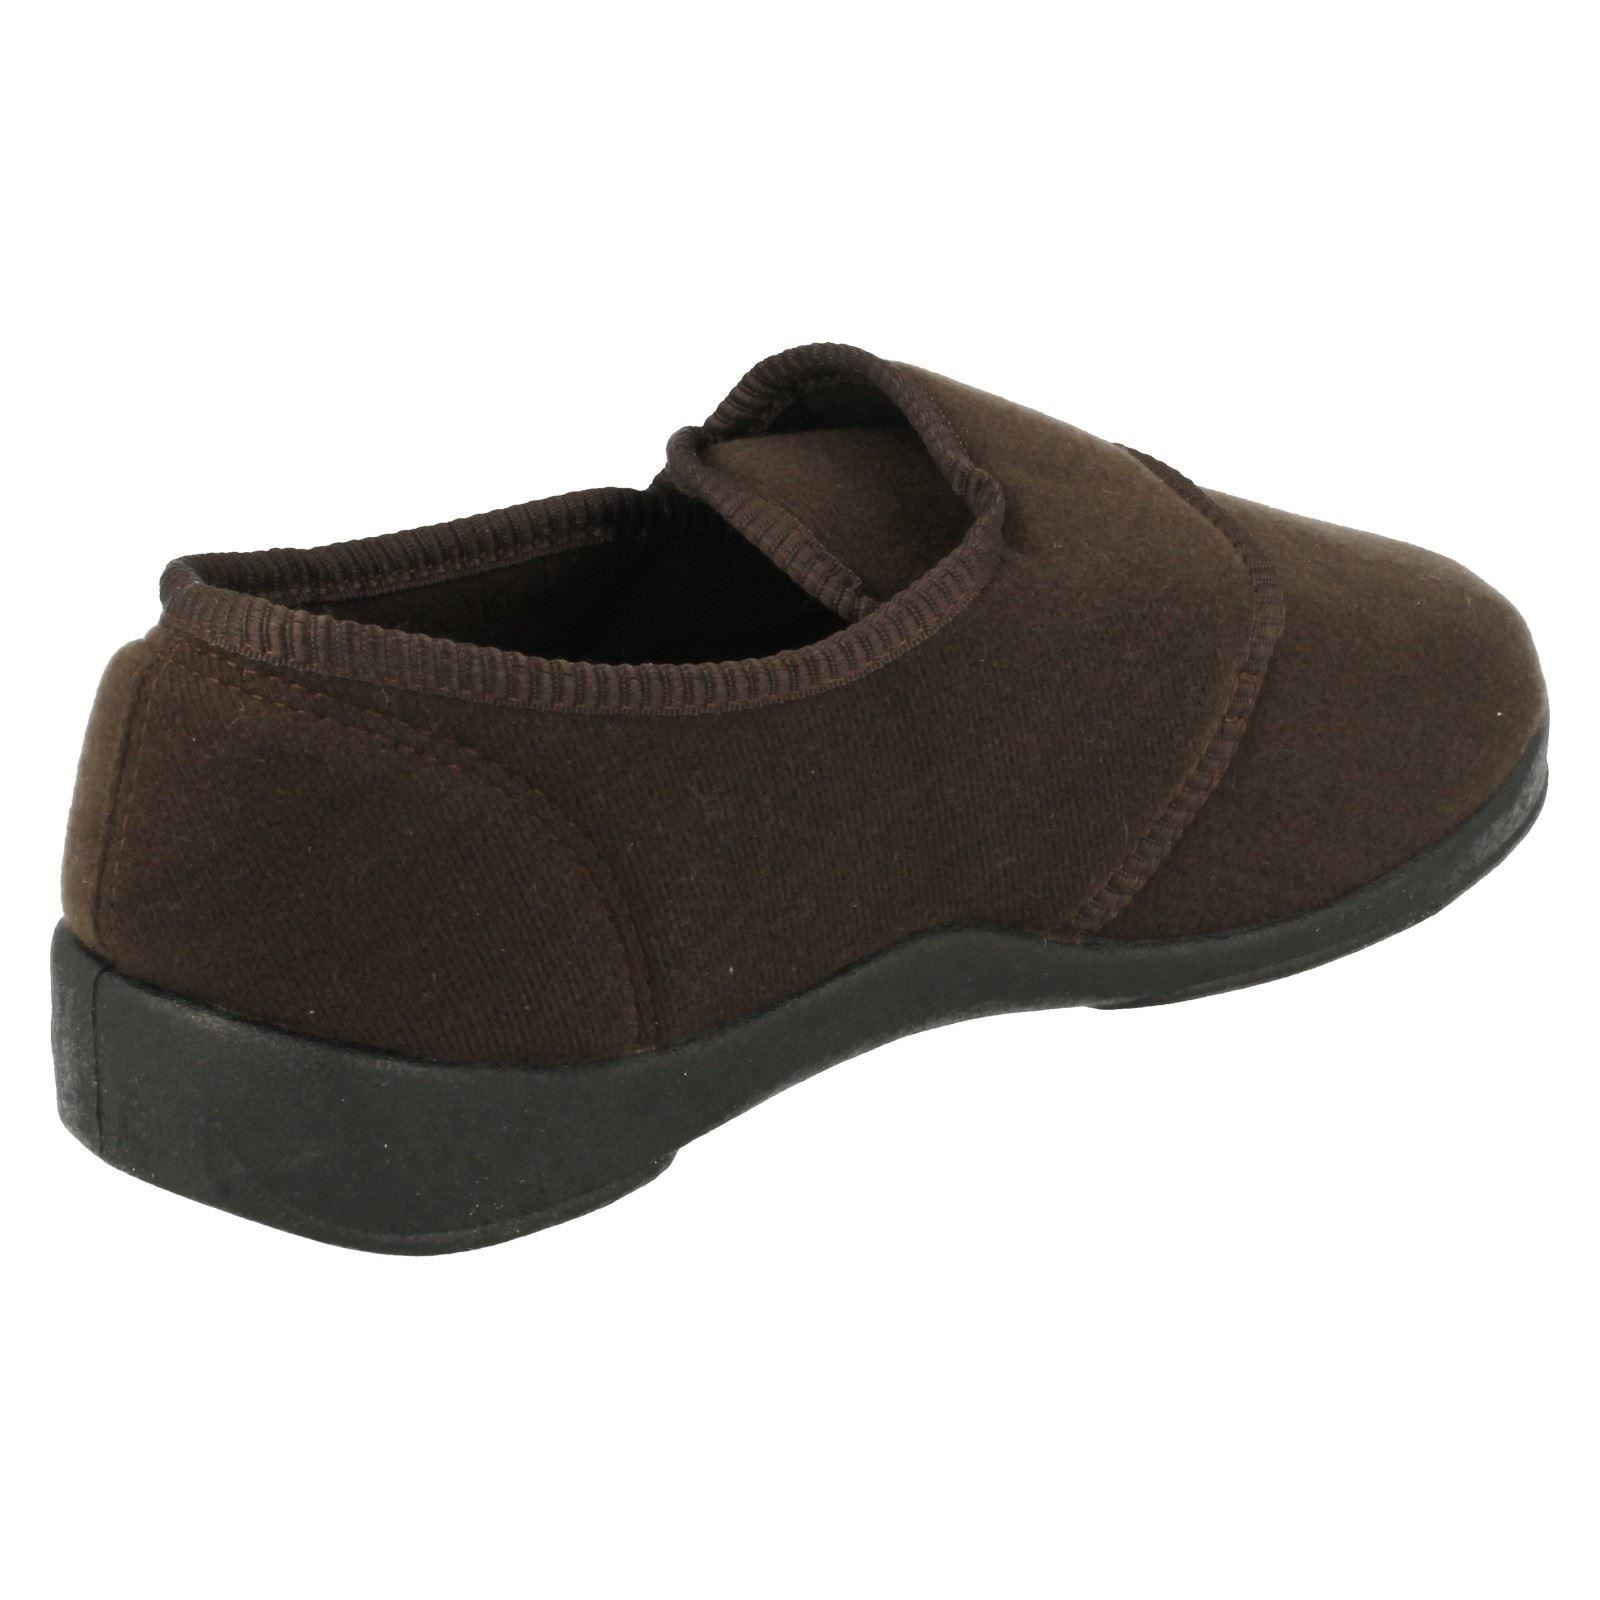 Mens Natureform Slippers Style George-W